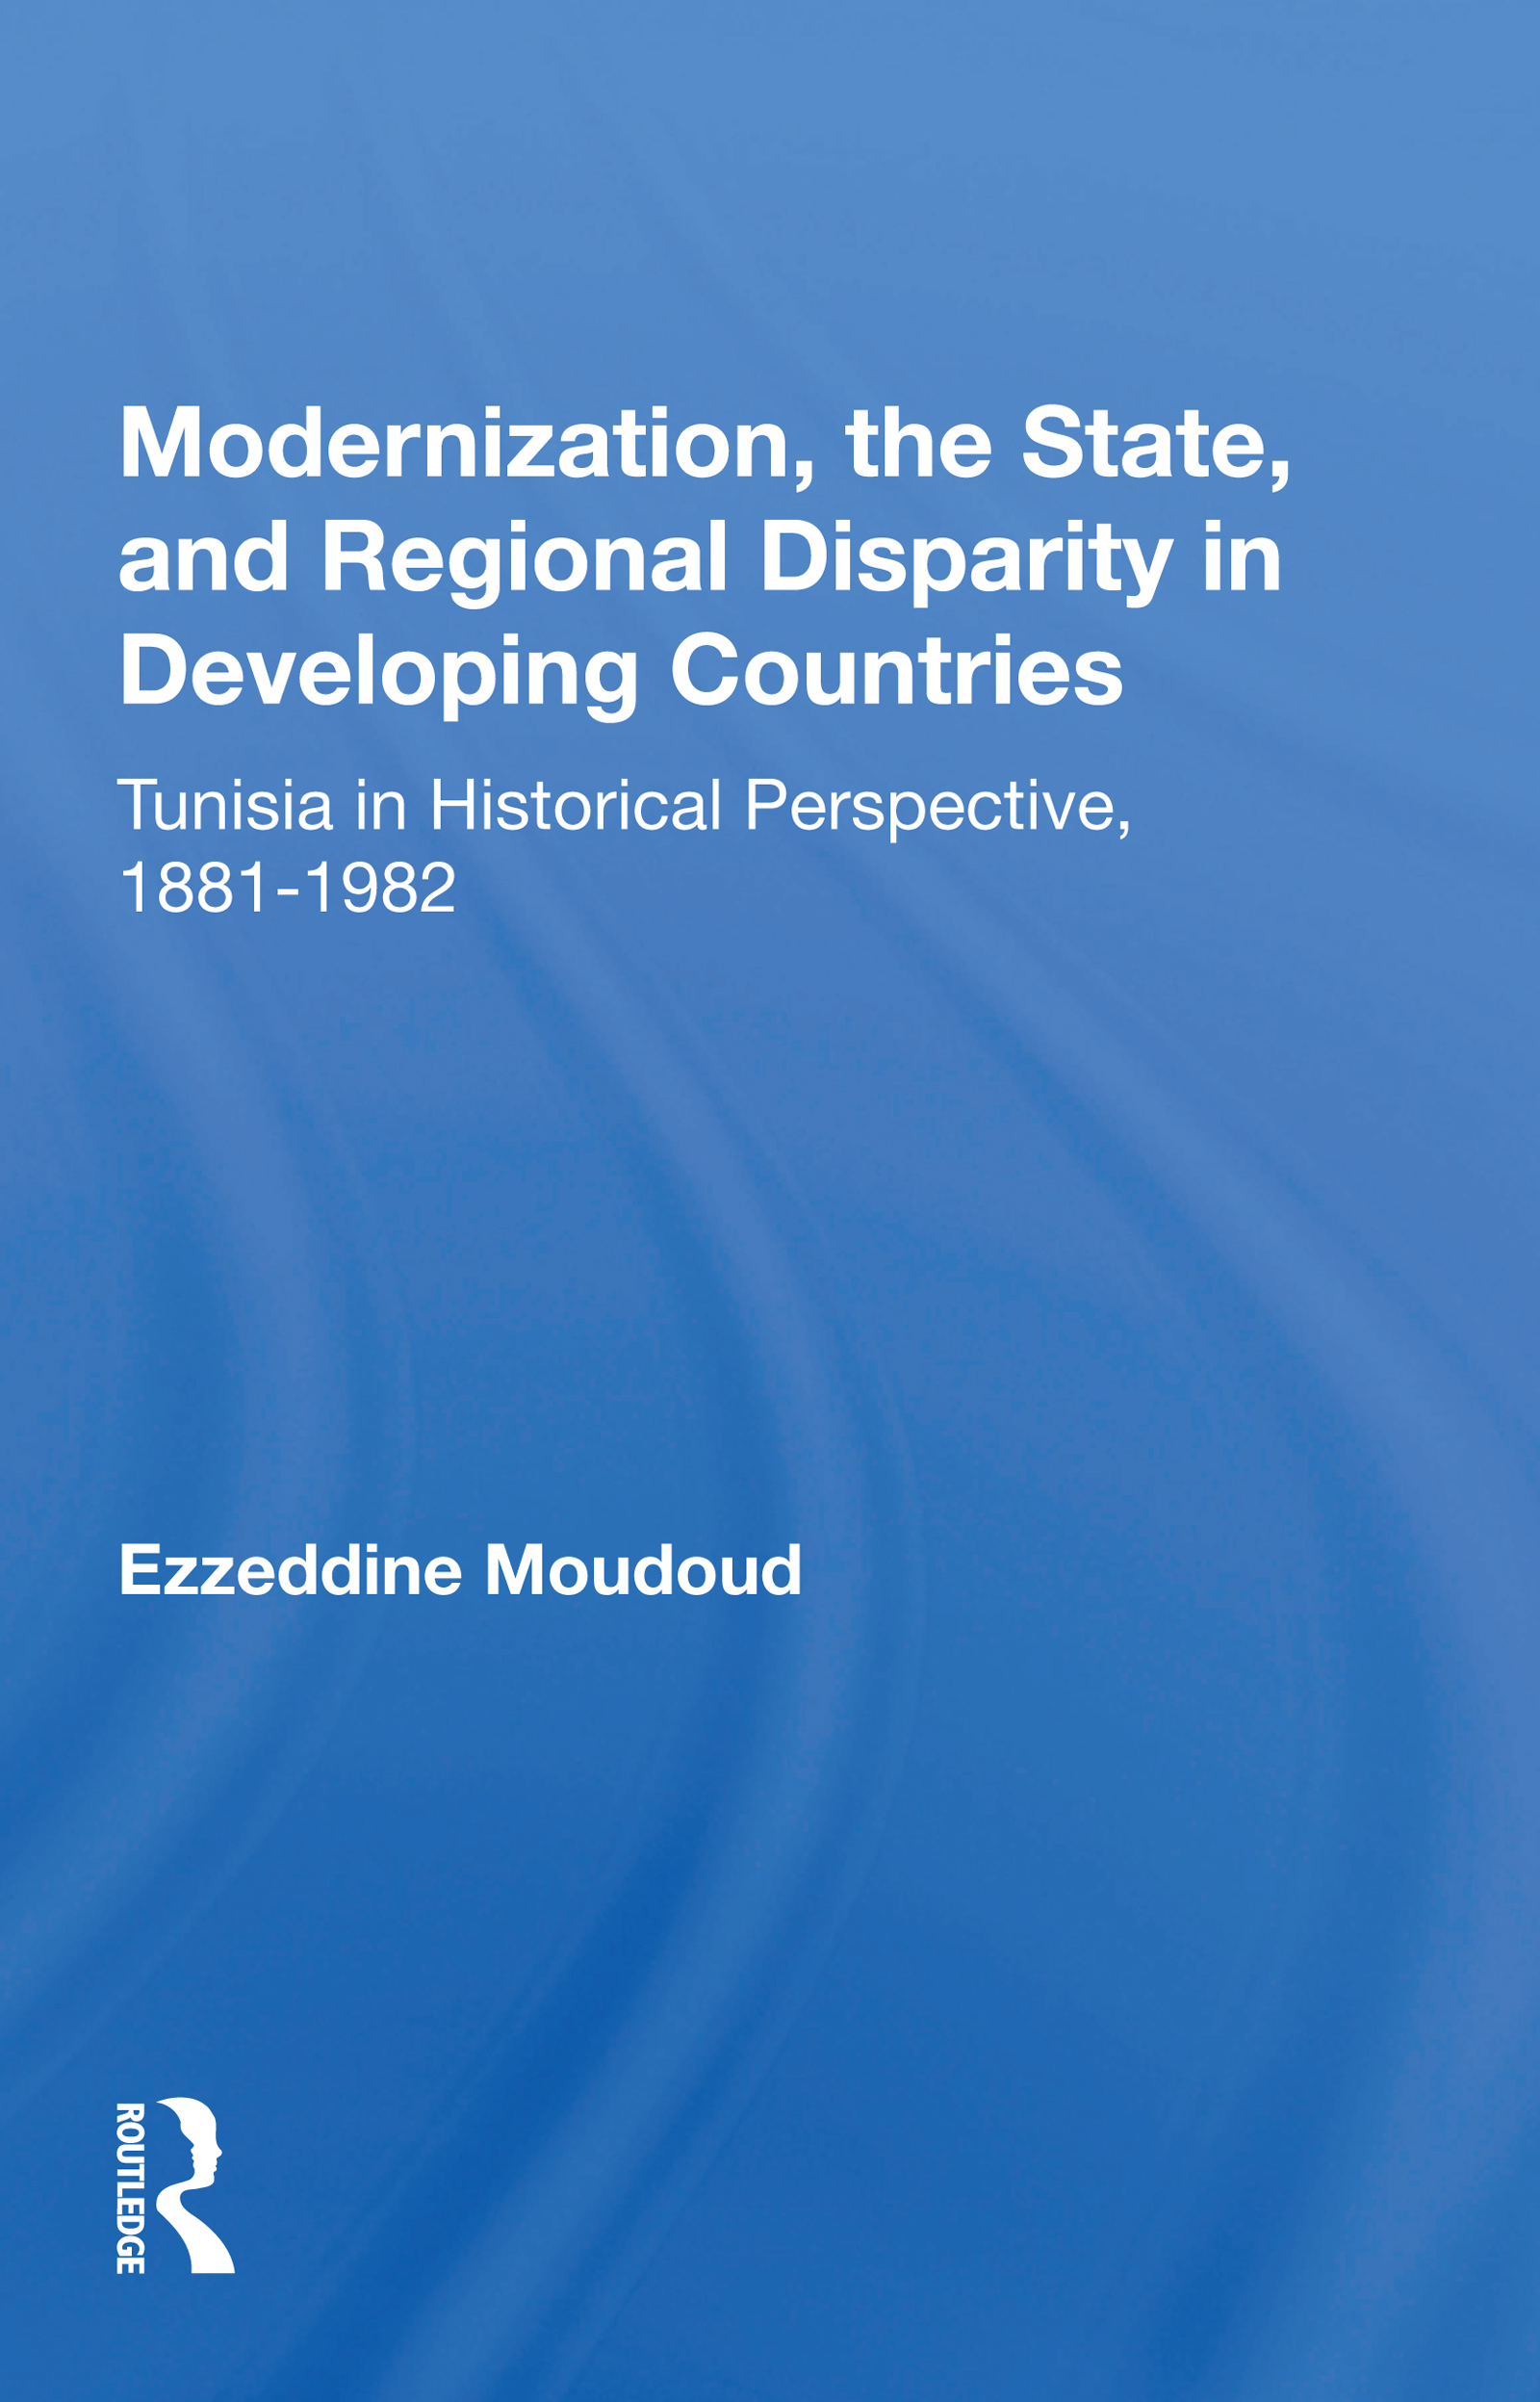 Modernization, the State, and Regional Disparity in Developing Countries